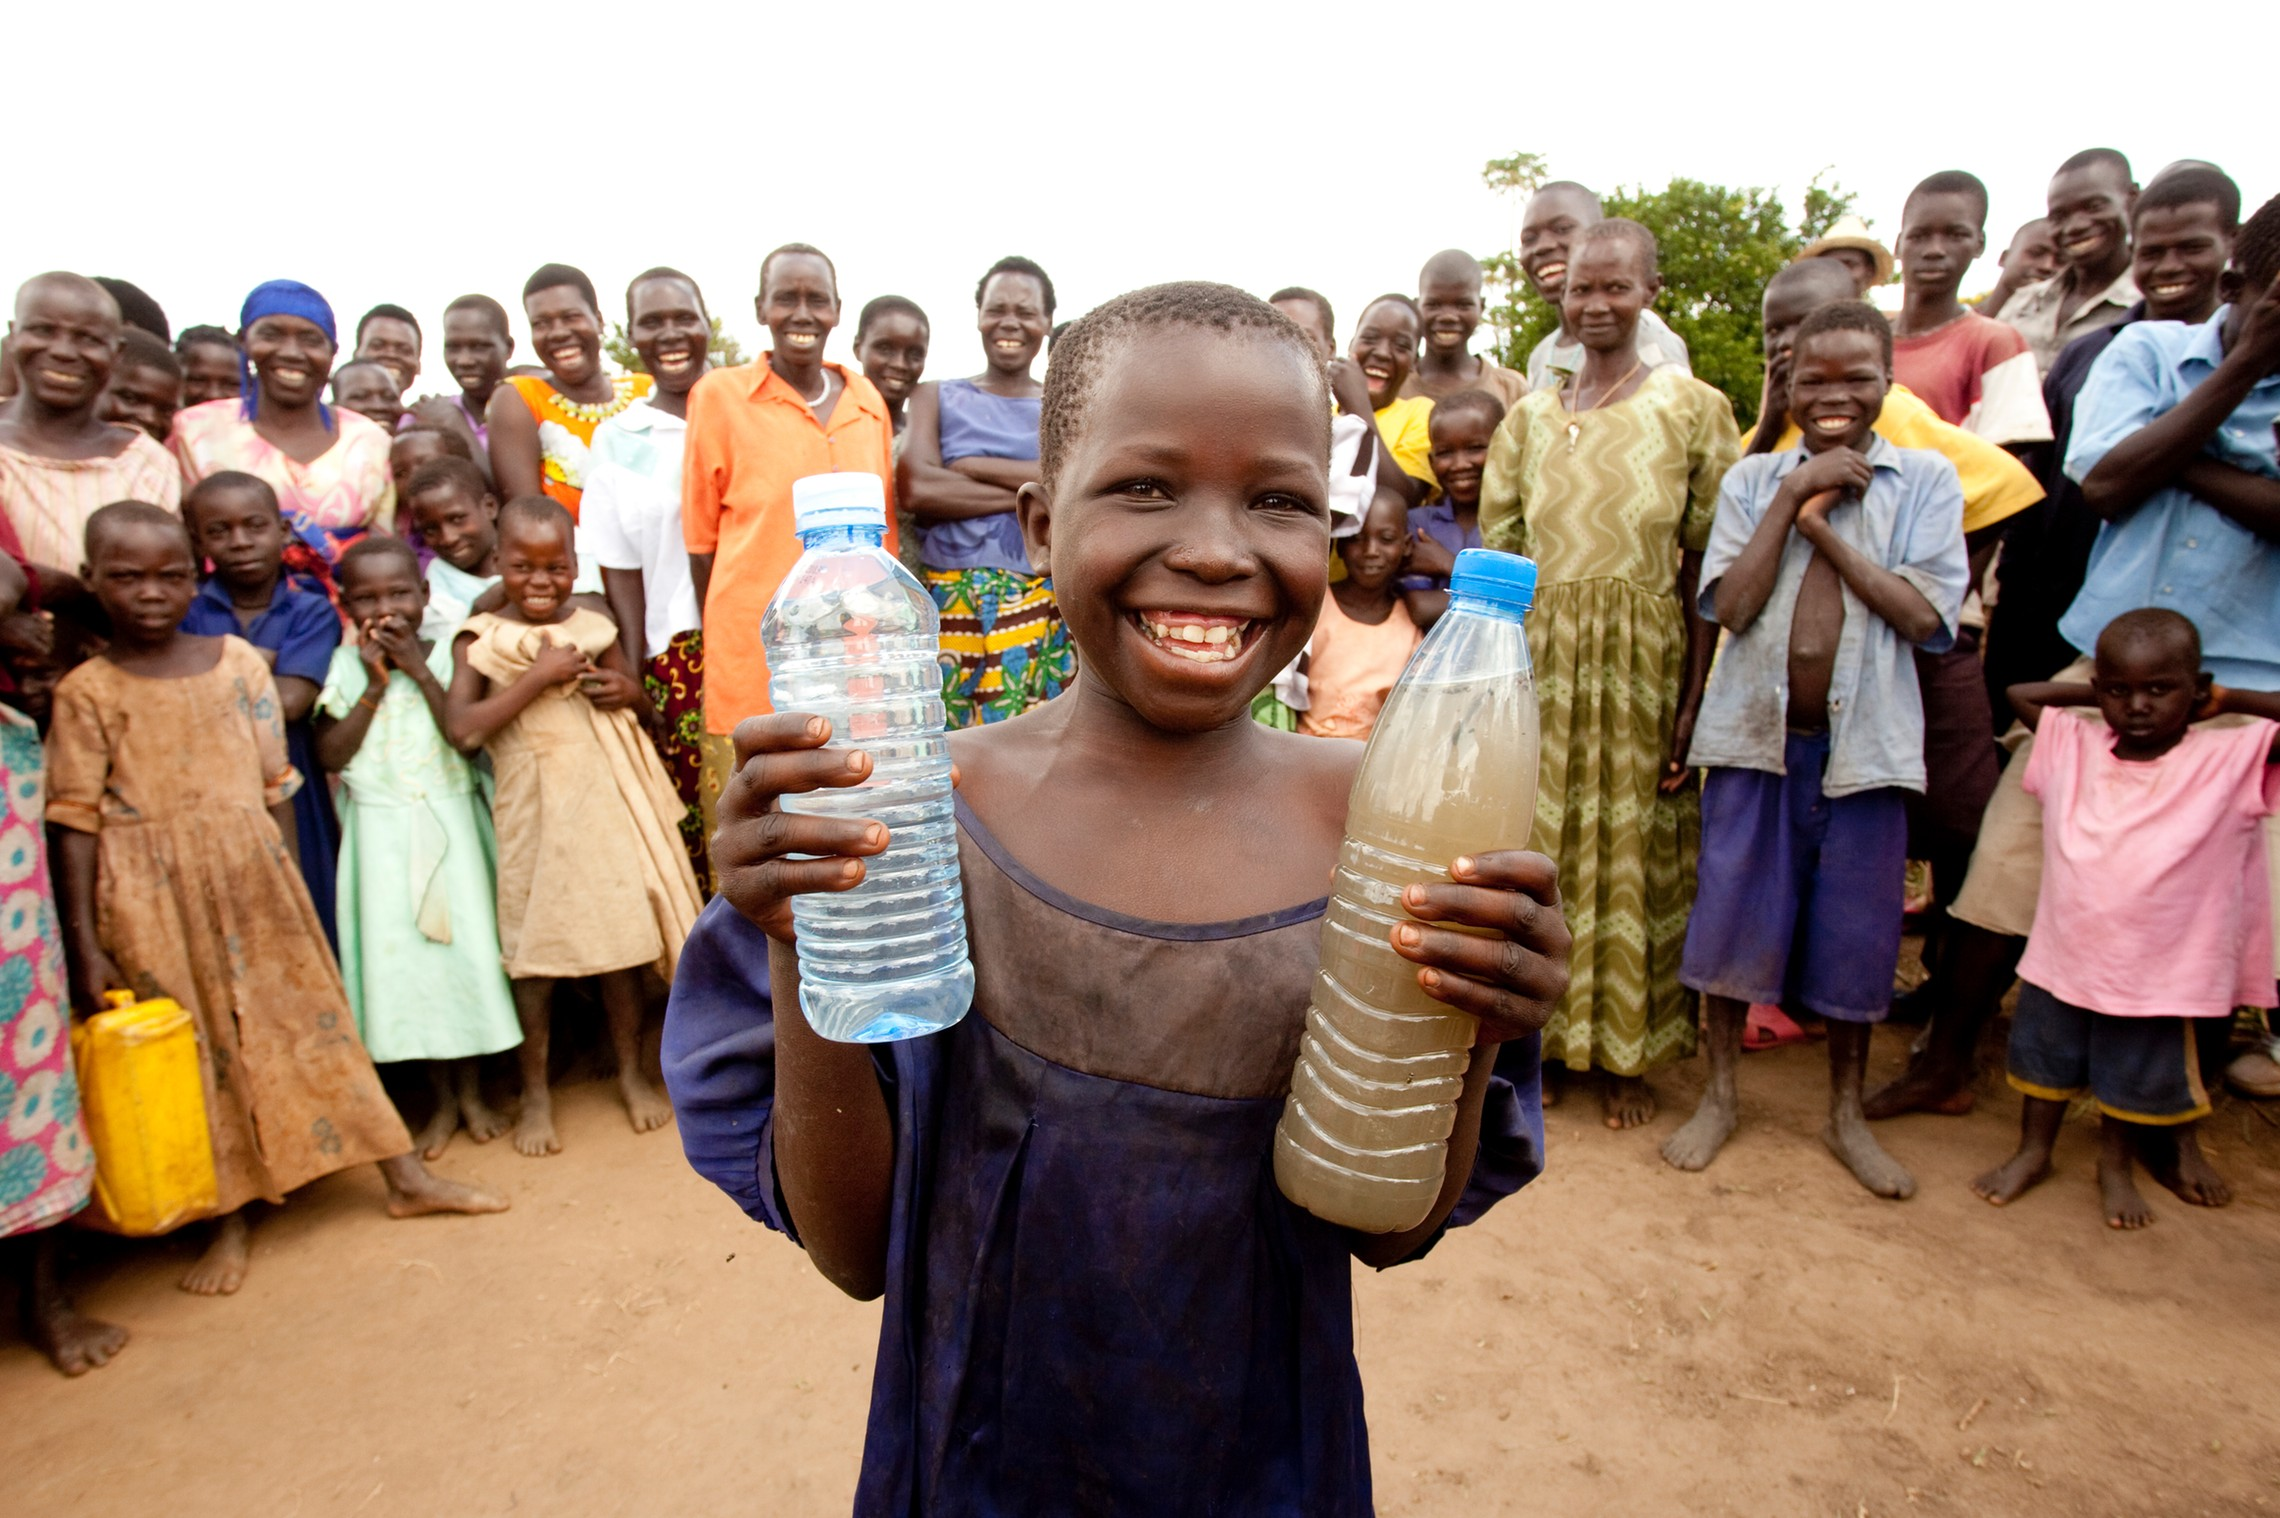 charity-water-smiling